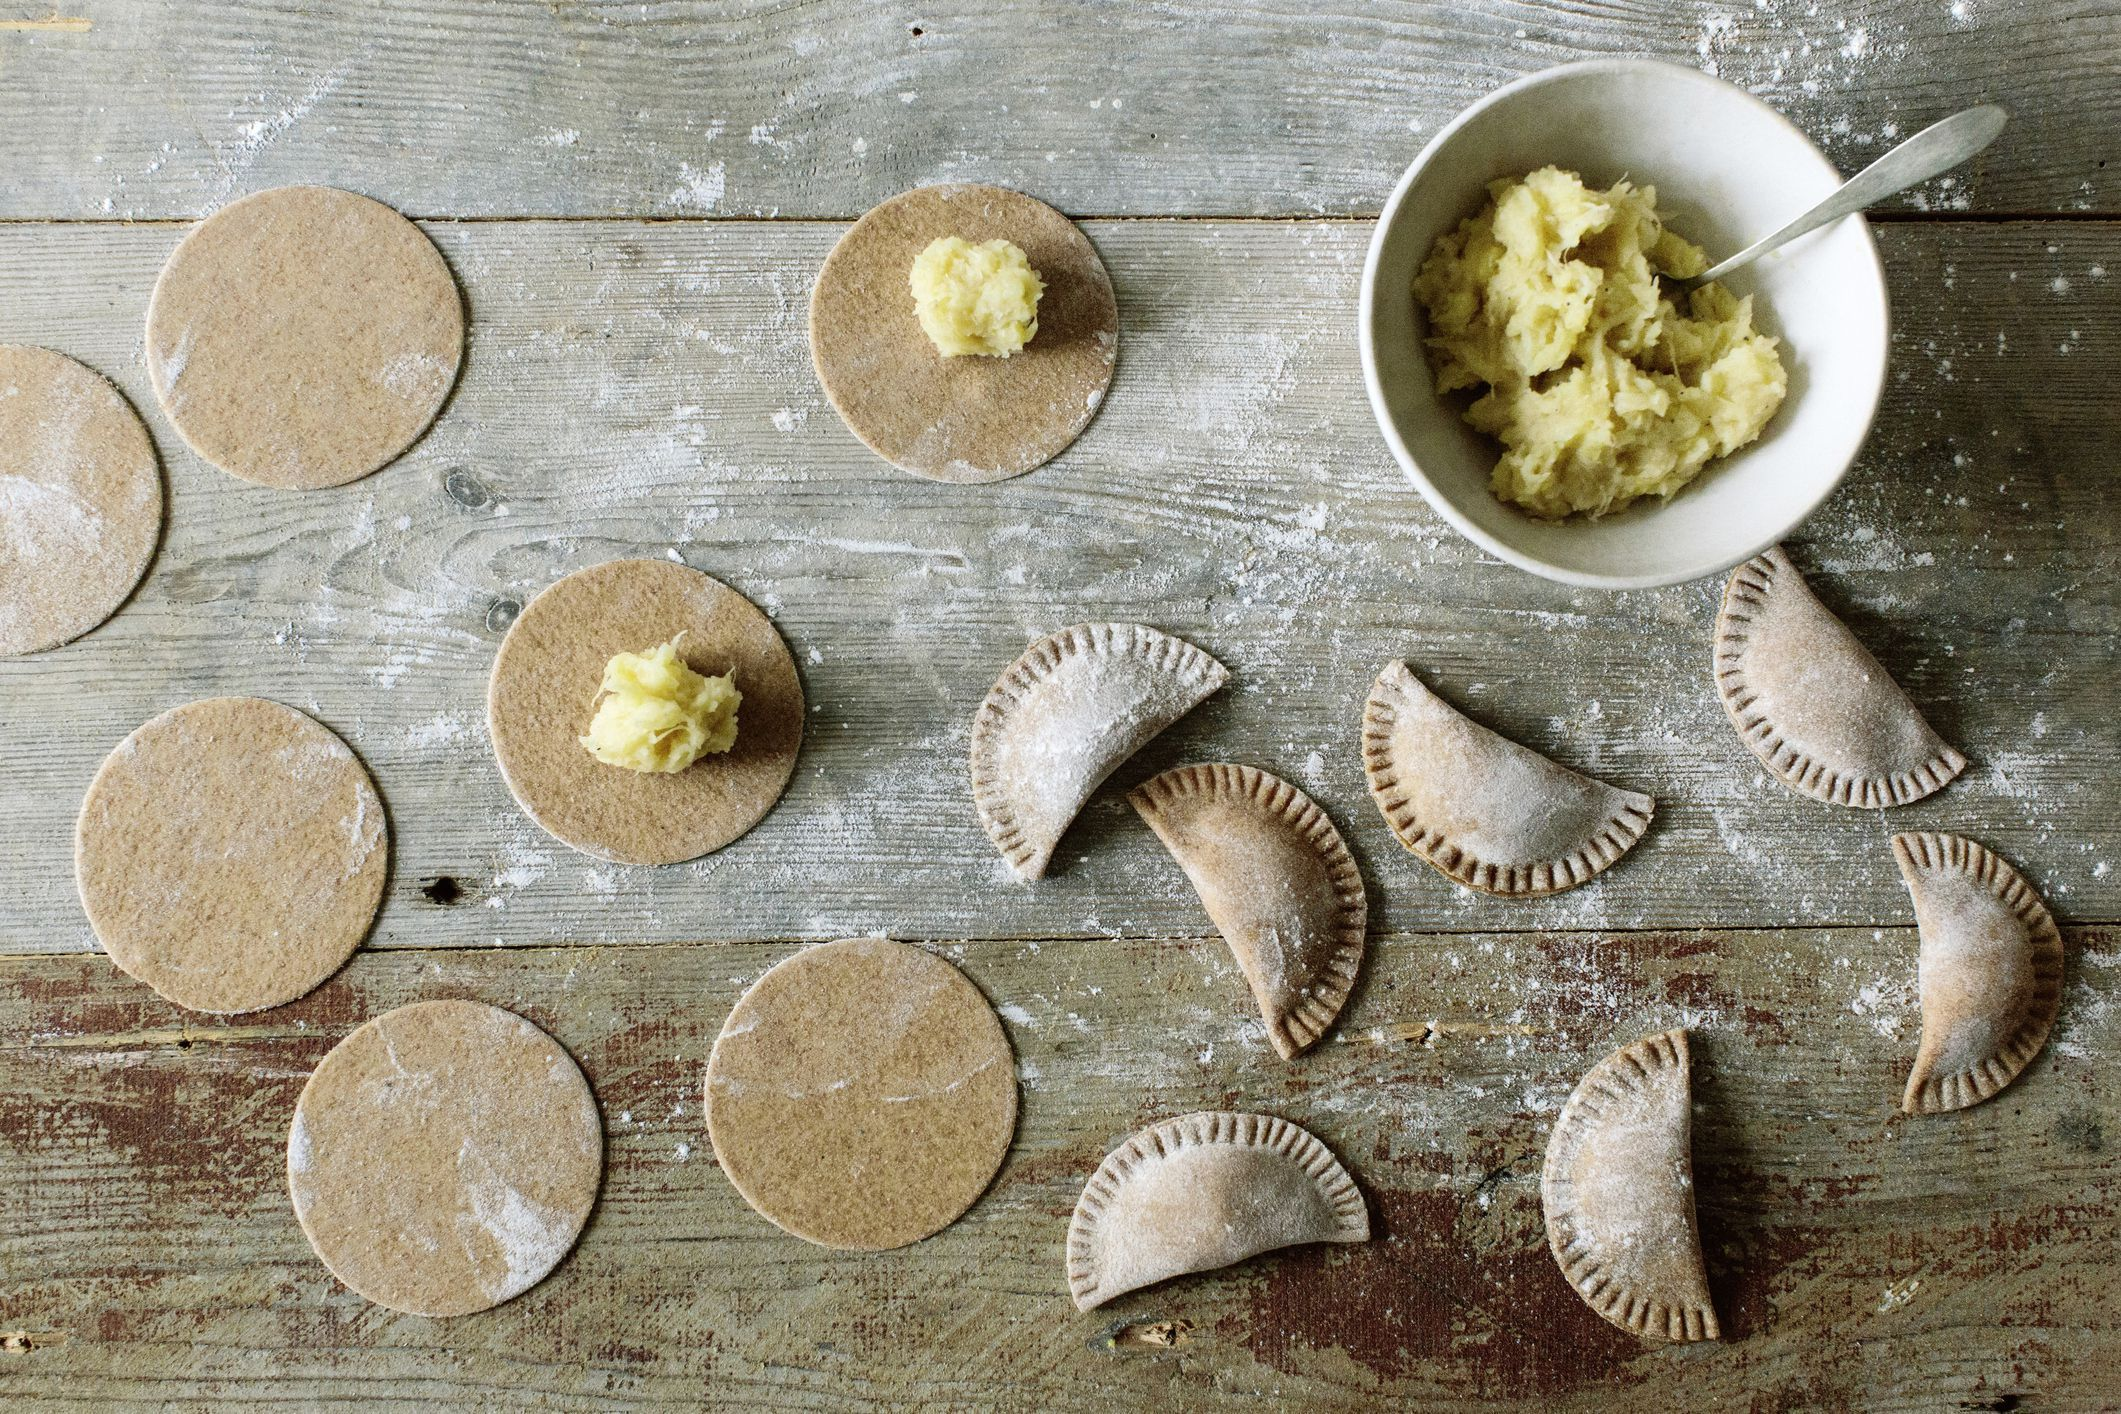 vegan pierogi dough recipe uses no eggs and no dairy in the recipe. It is made with flour, oil, salt, and water. Included are links to vegan fillings.